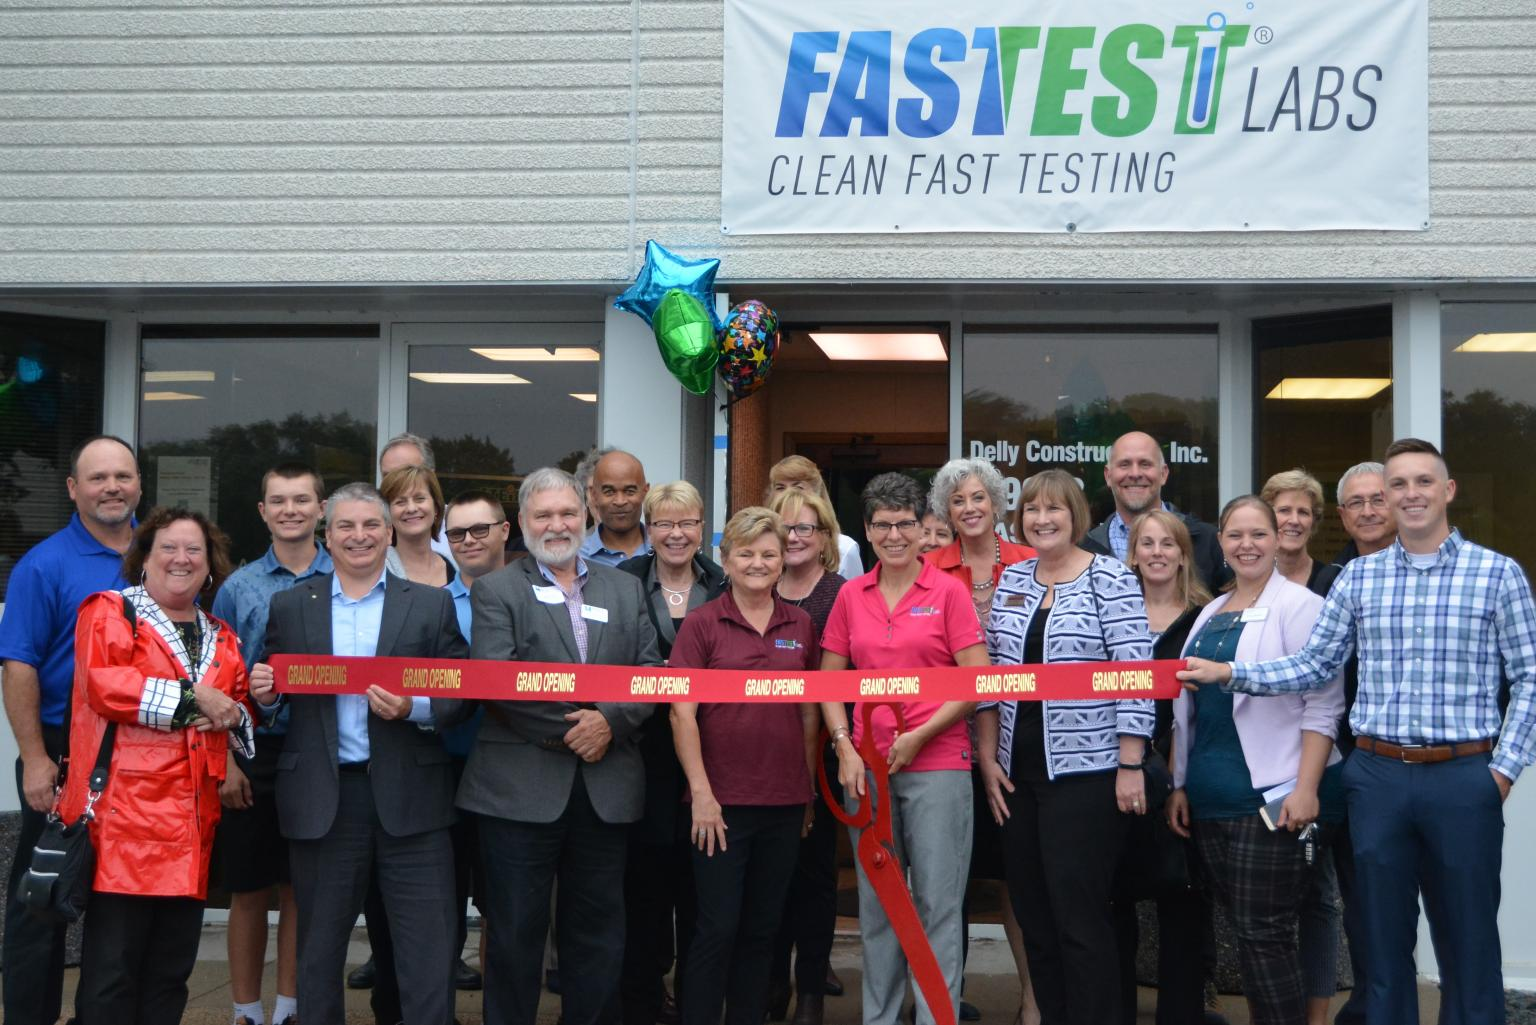 Fastest Labs of Bloomington grand opening ribbon cutting